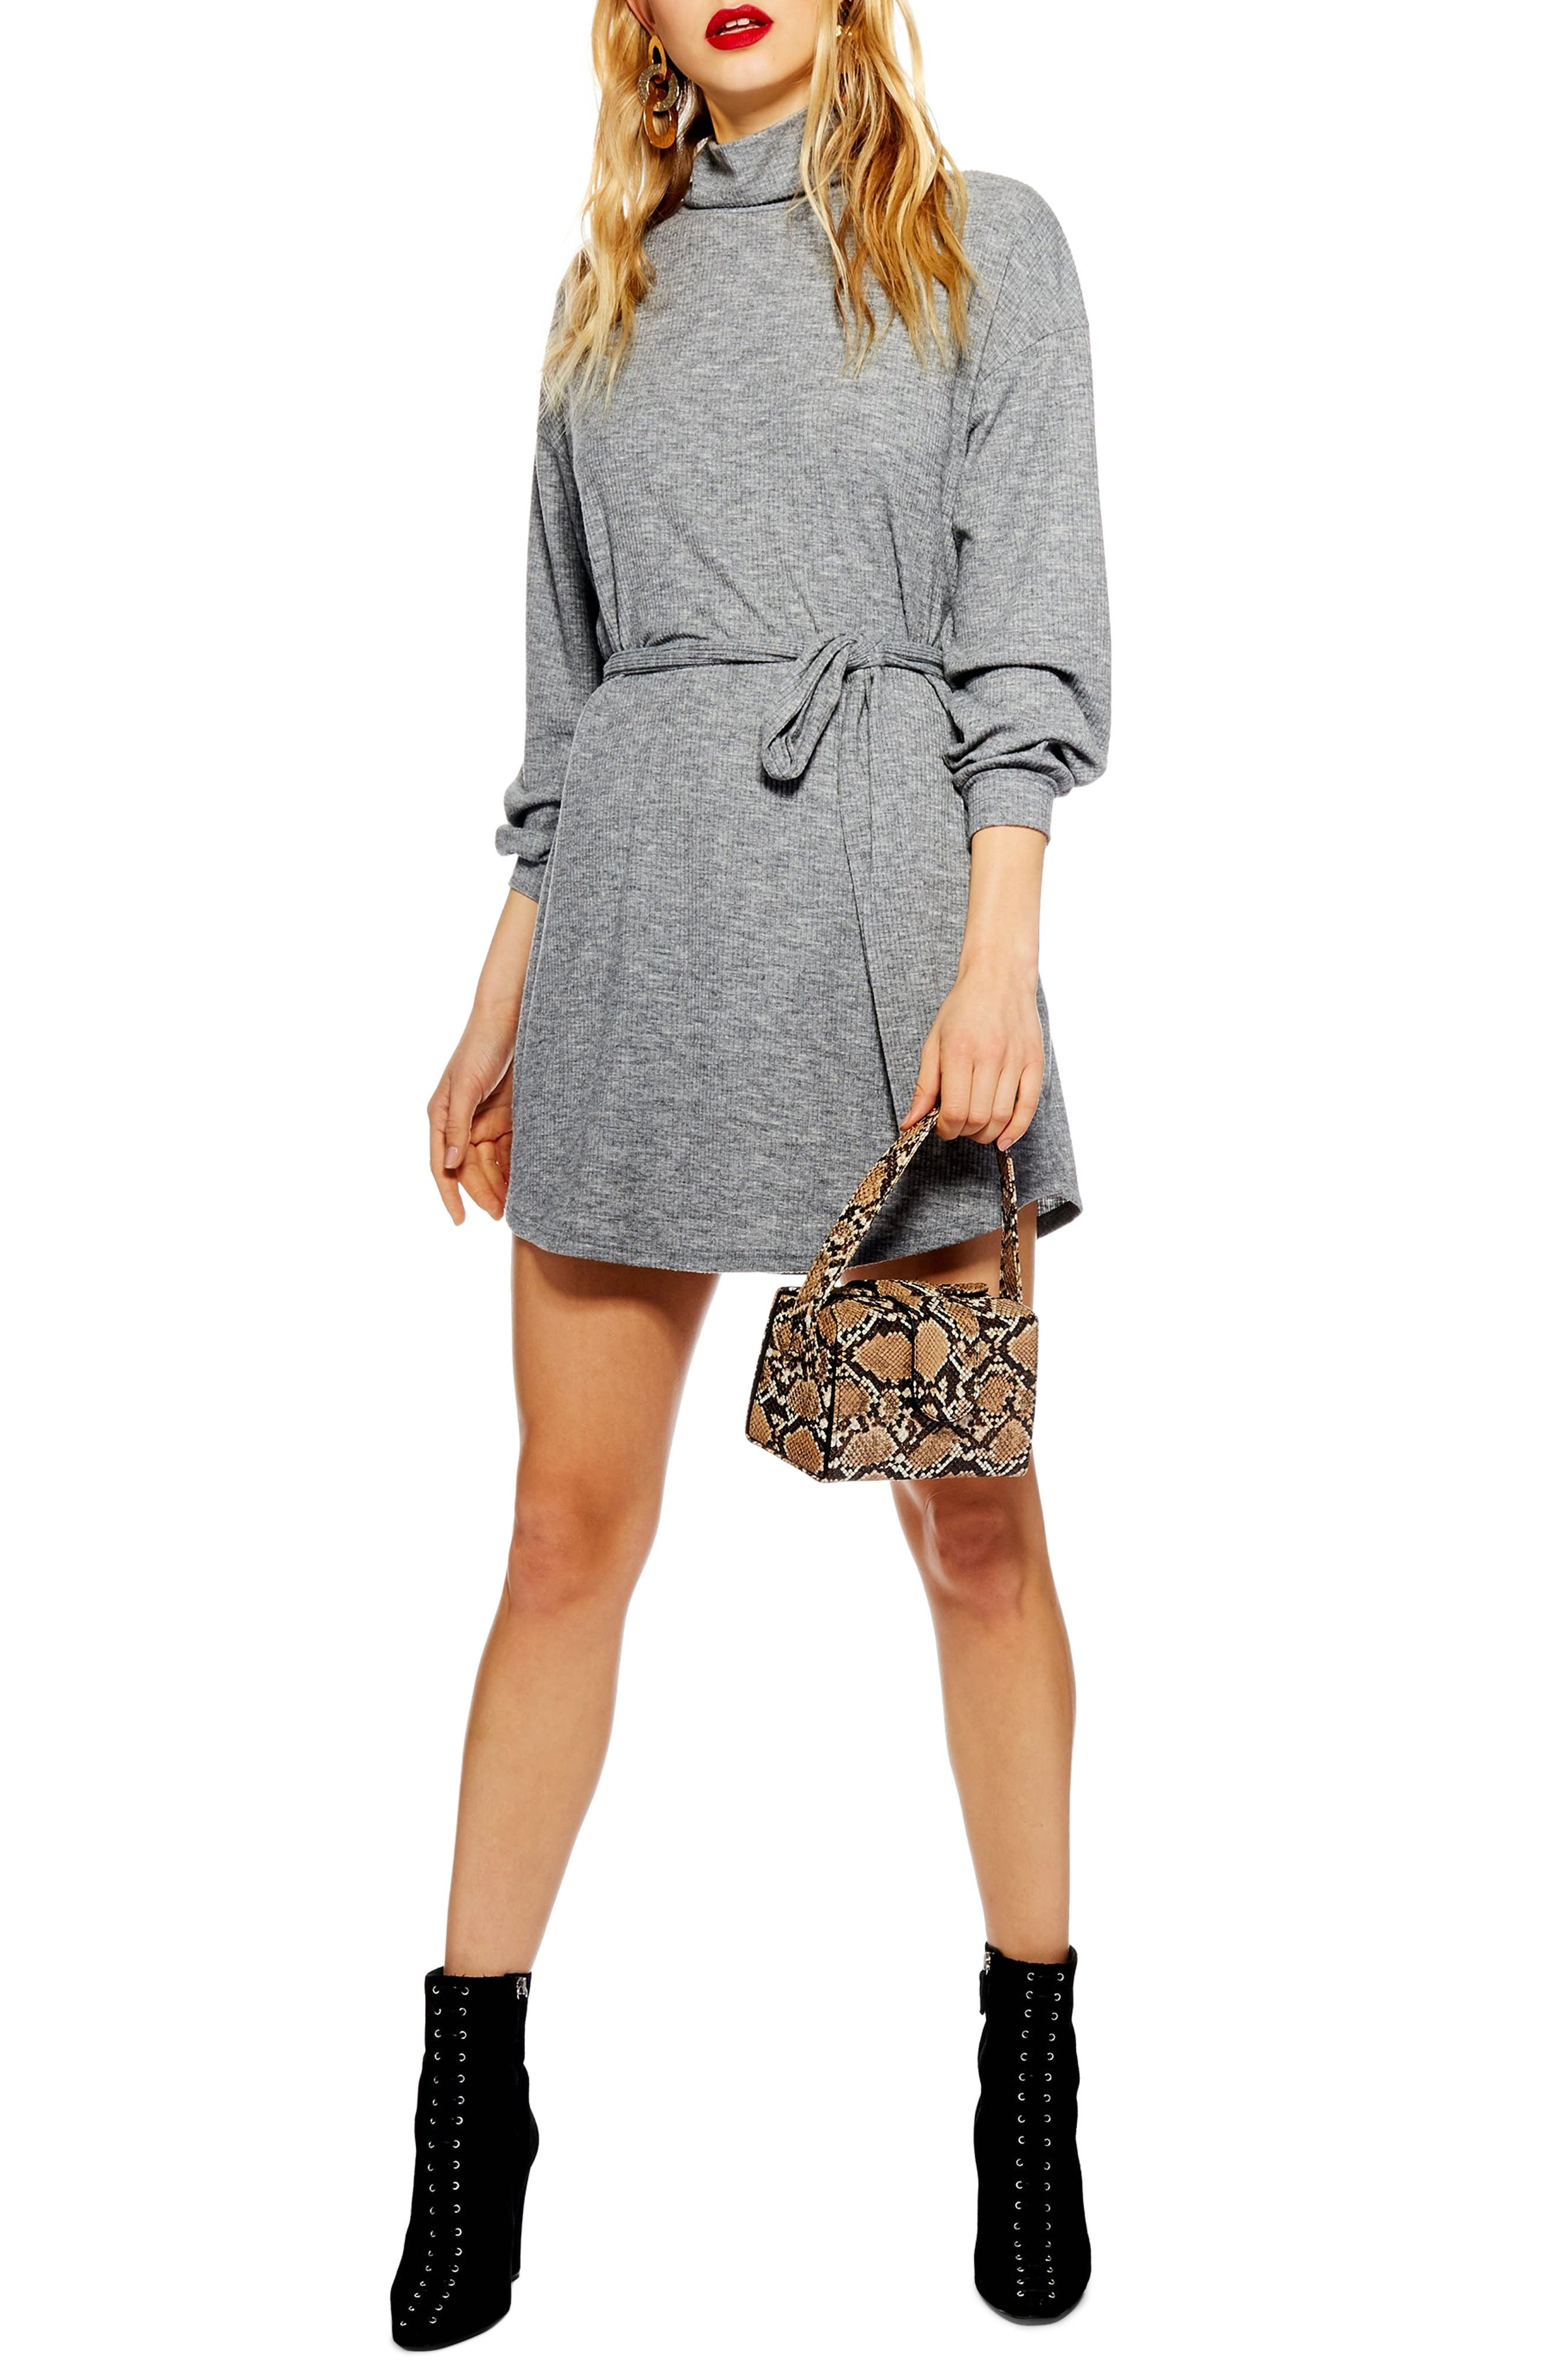 Topshop Belted Minidress, US (fits like 0) - Grey